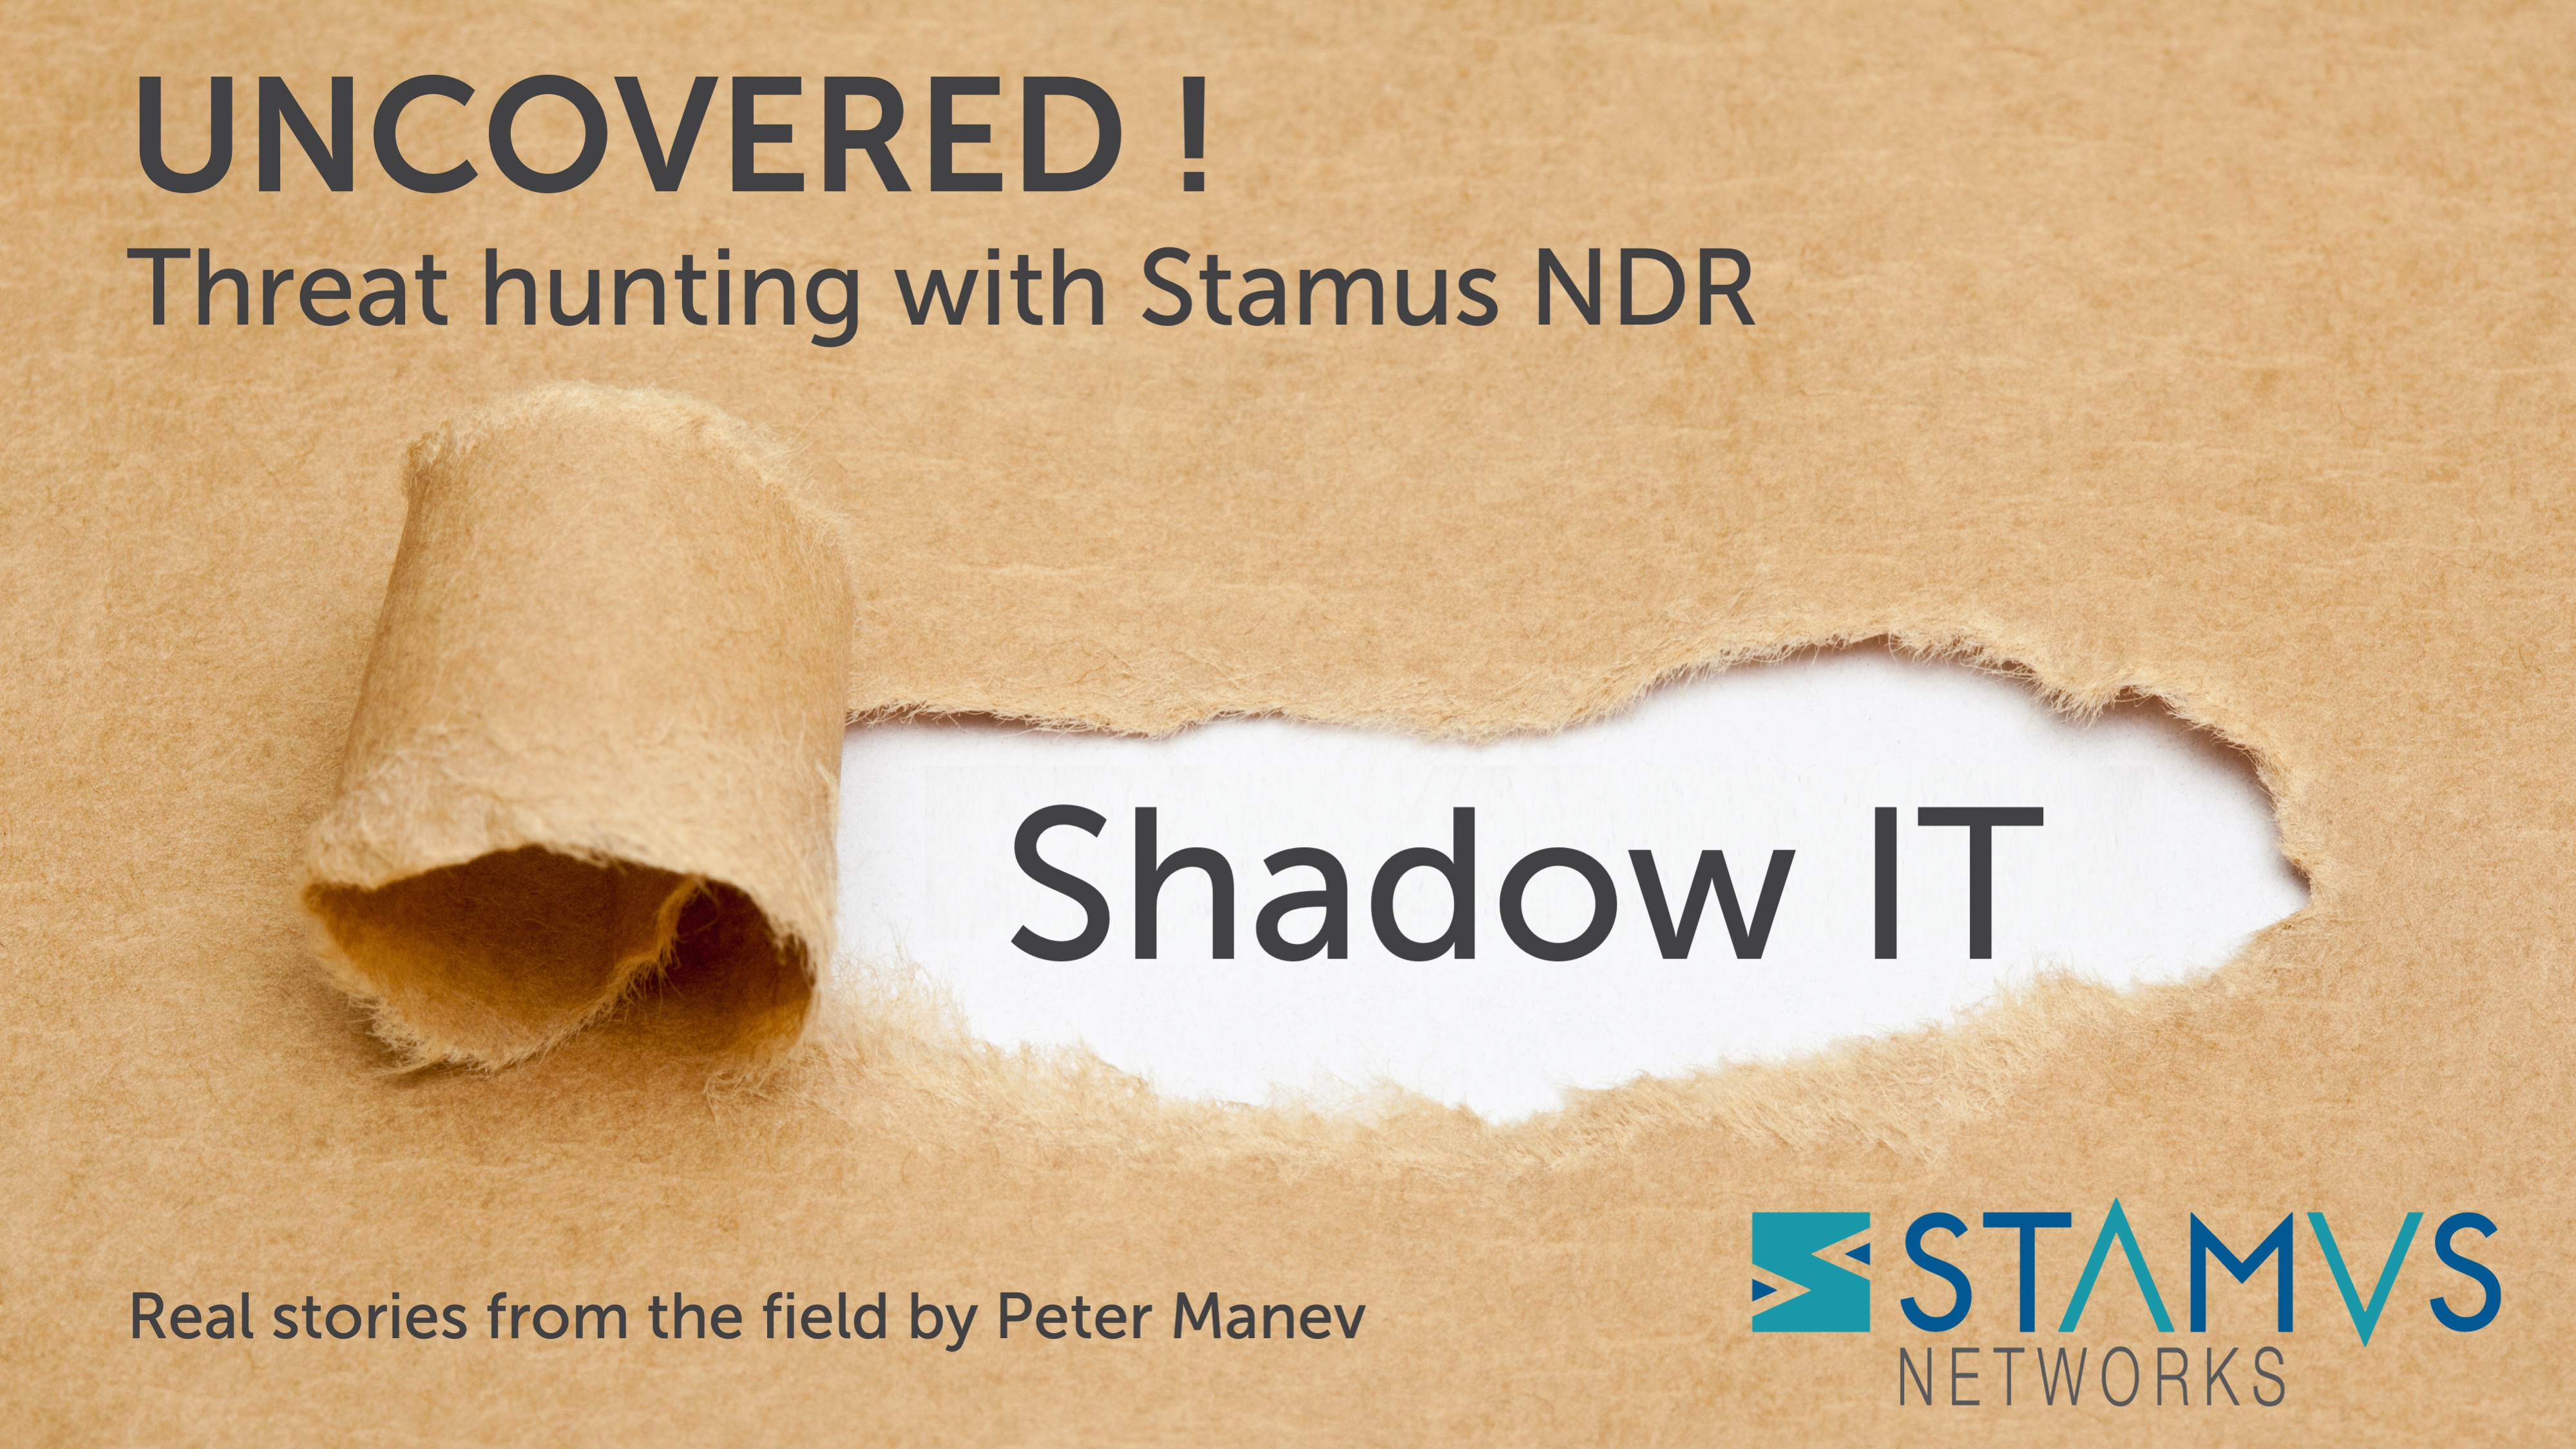 Stamus Networks - Uncovered with Stamus NDR | Shadow IT